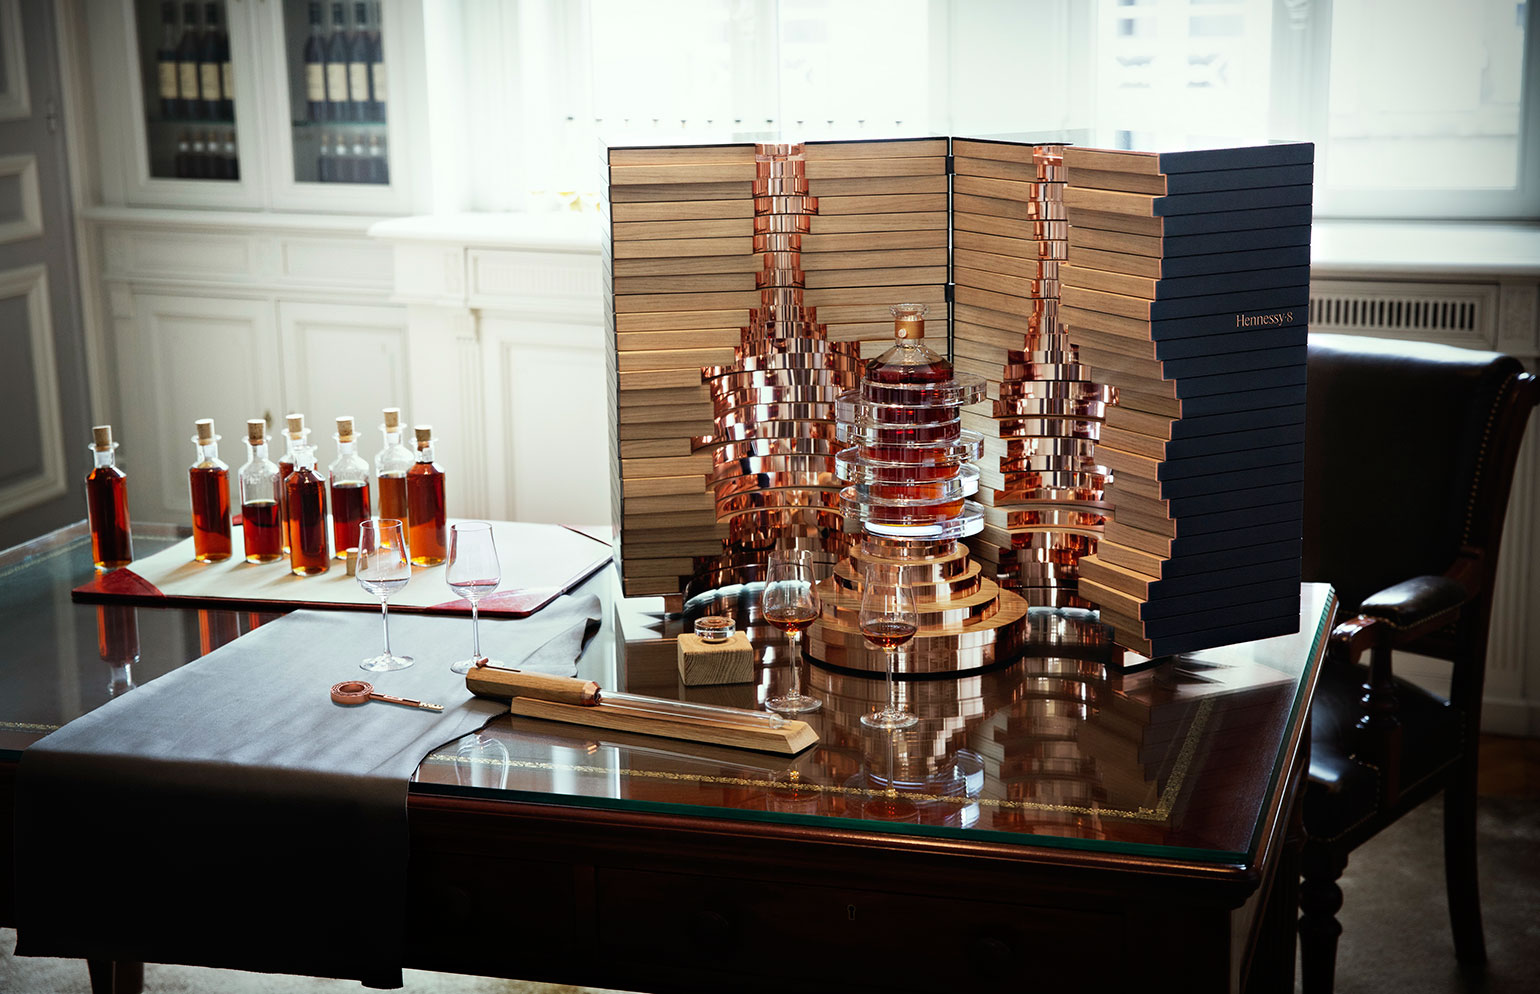 Arik Levy Design Limited-Edition Hennessy Cognac Bottle